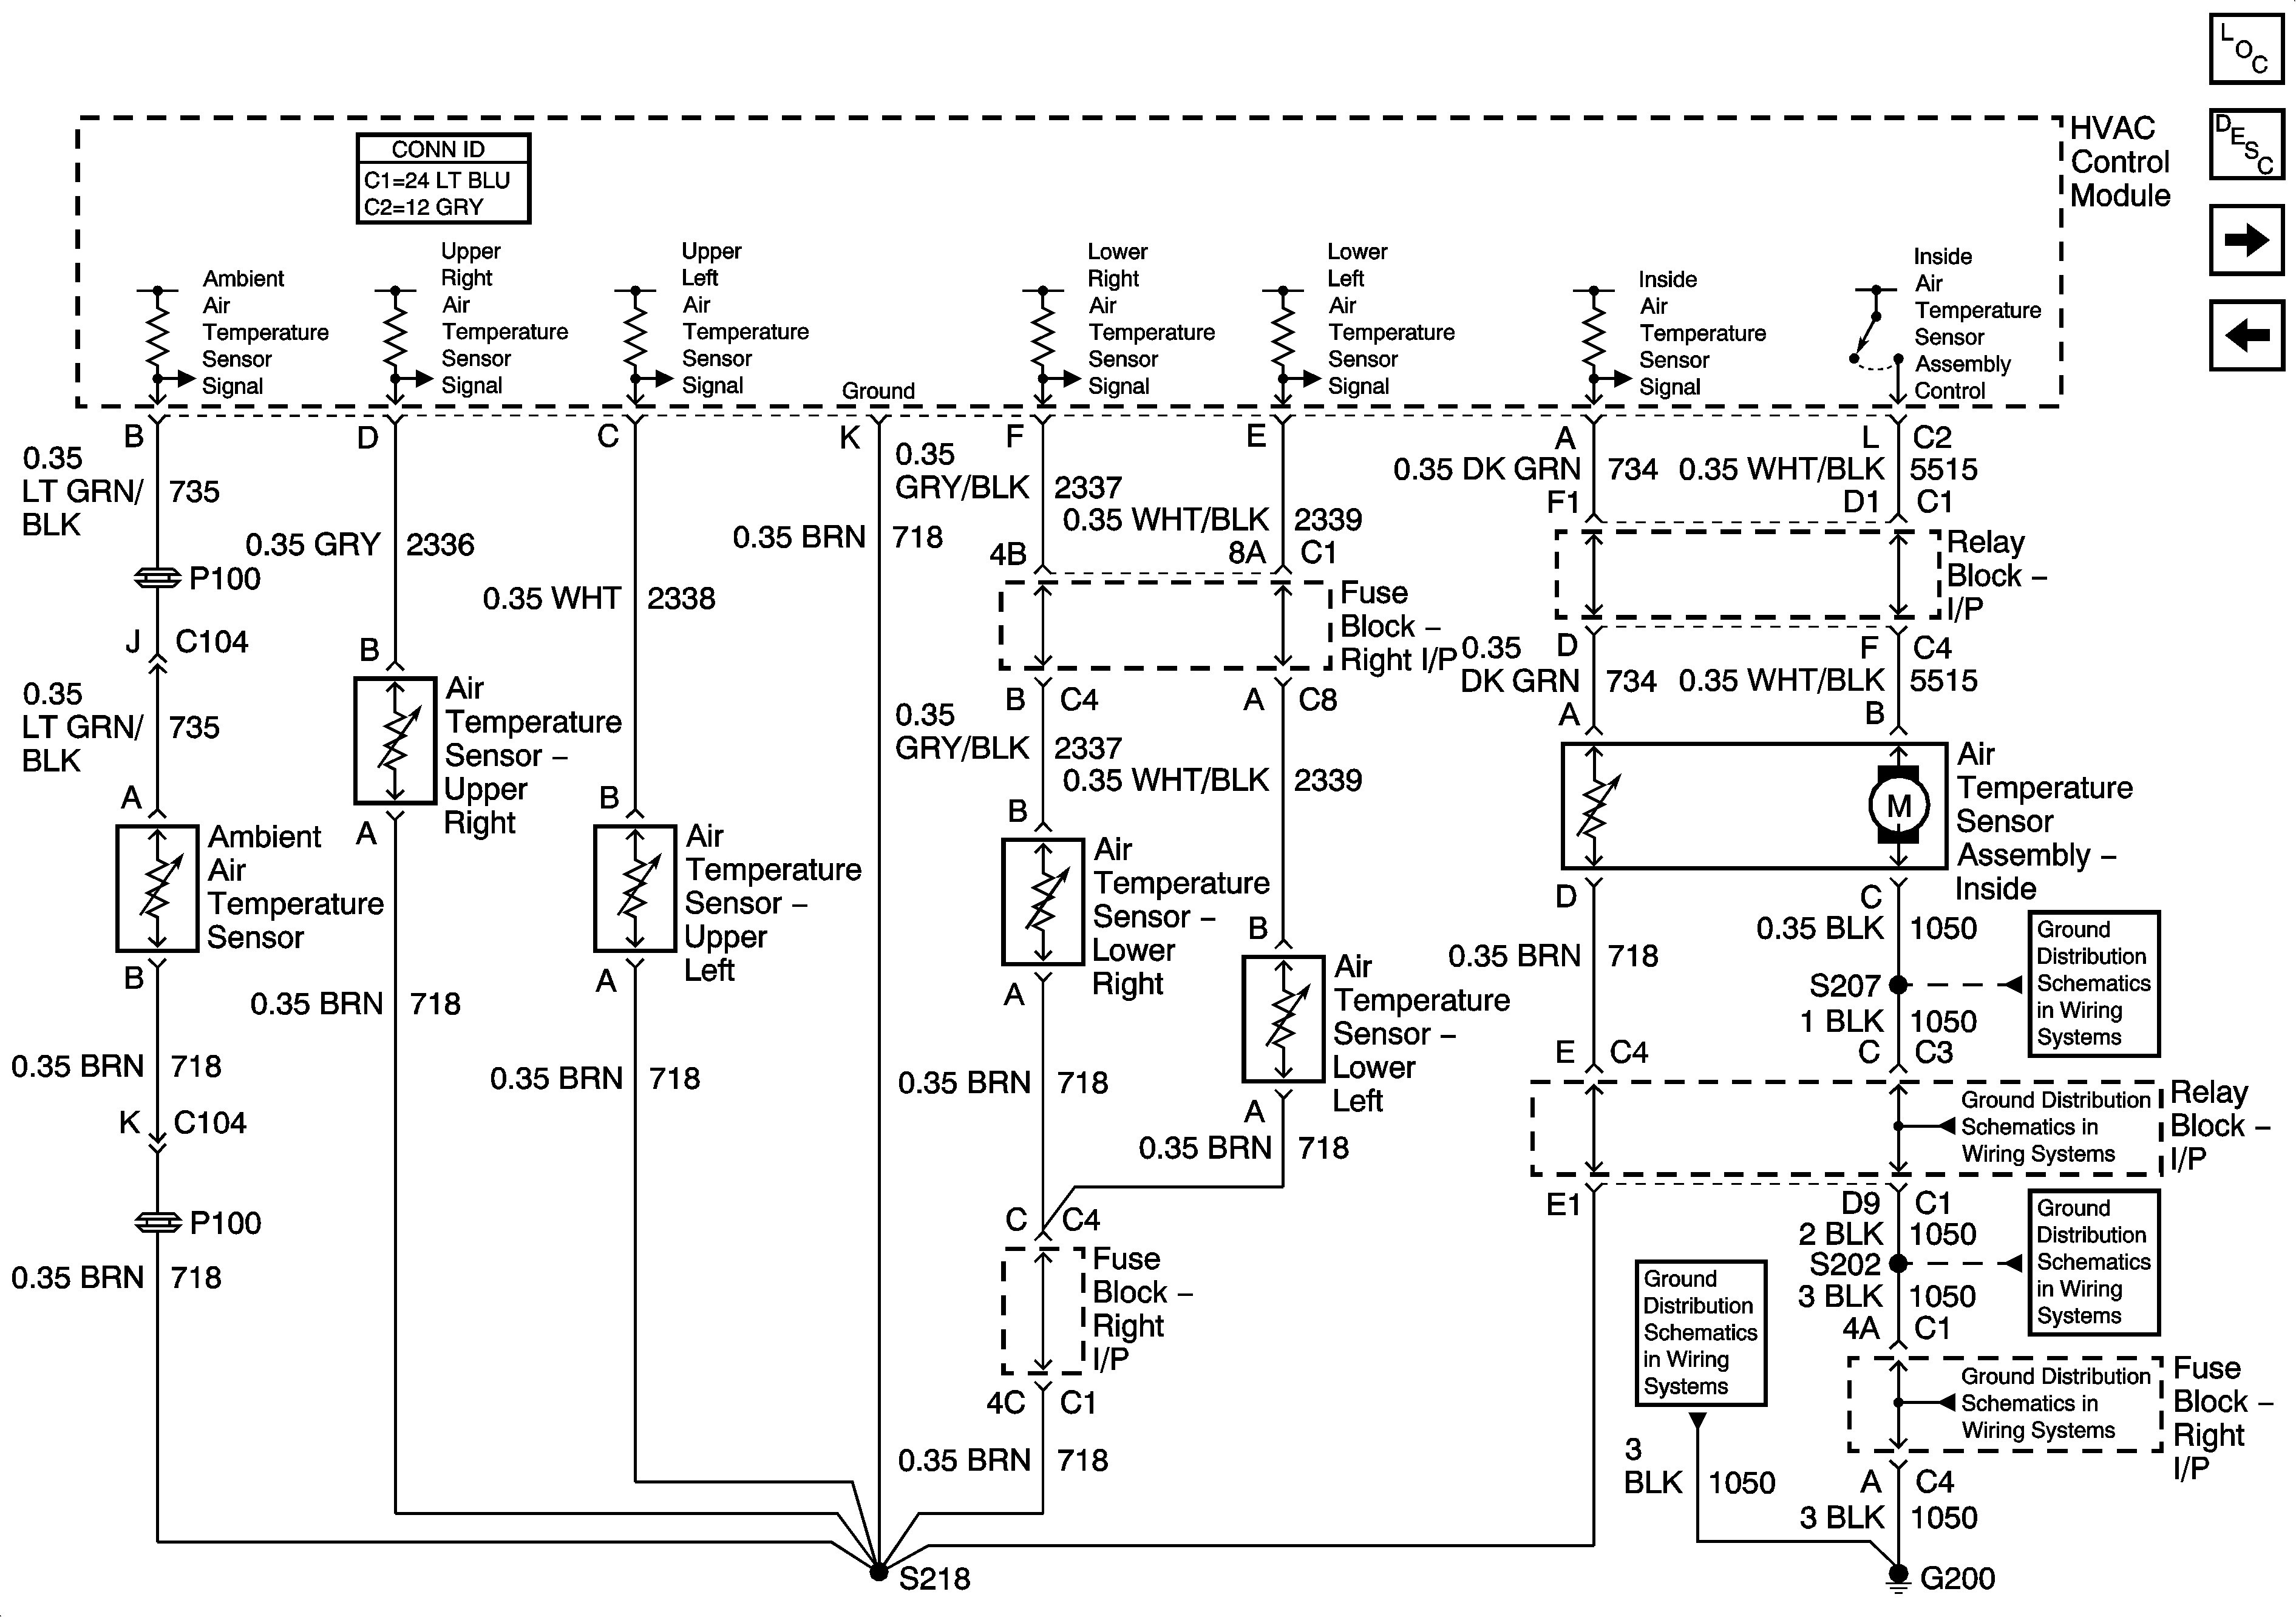 2004 Tahoe Pnp Wiring Diagram Start Building A Sportster 2005 Chevy Trailblazer Stereo Image Rh Mainetreasurechest Com Drivers Door